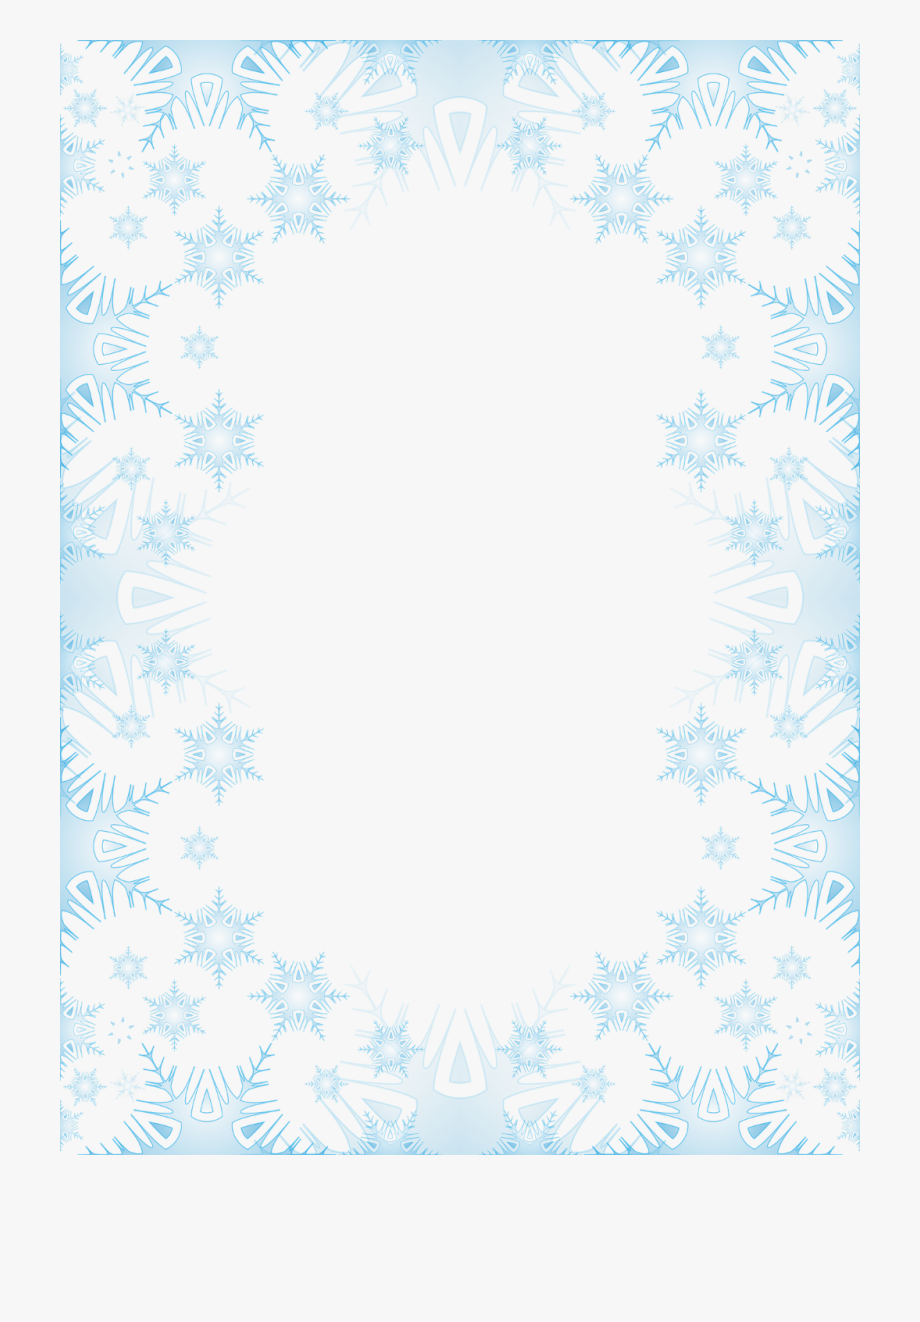 Nieve clipart png freeuse download ftestickers #winter #snow #snowflakes #ice #frame - Fondos De Nieve ... png freeuse download